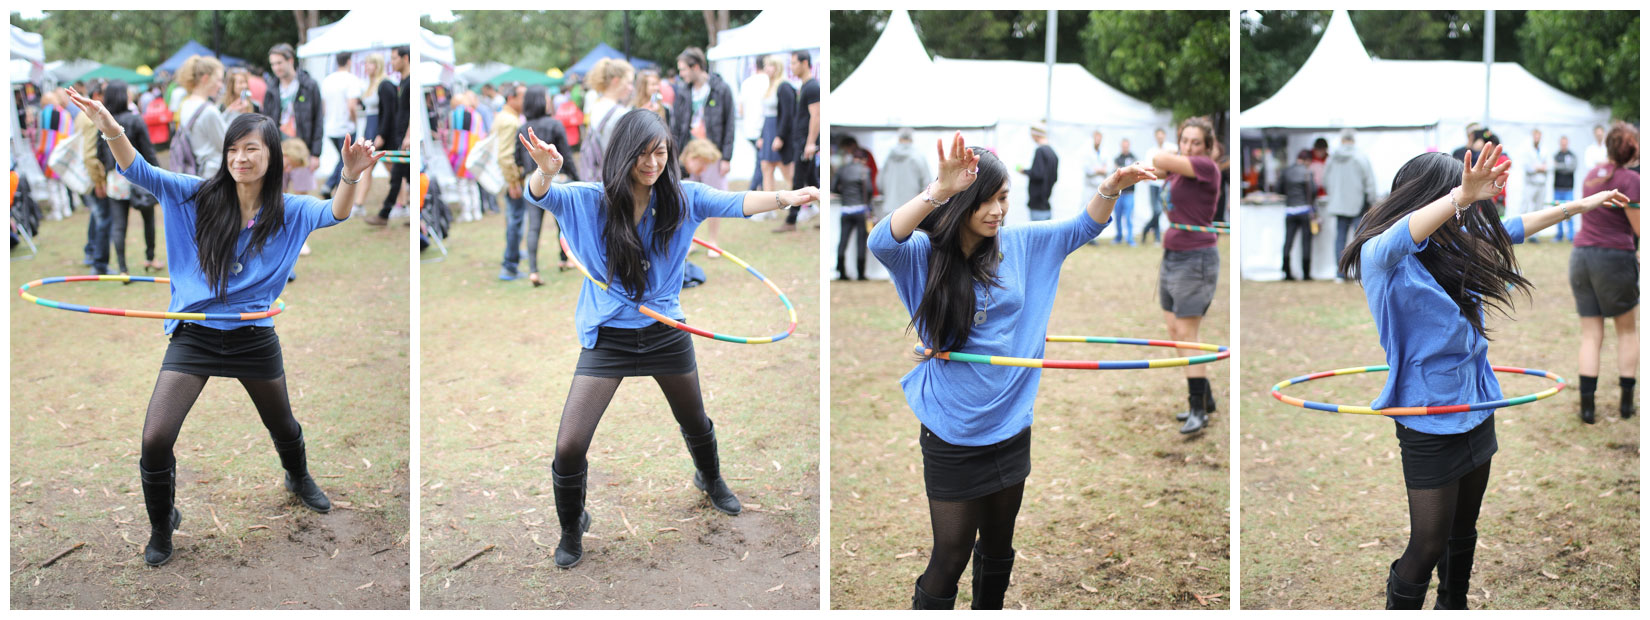 Me hula hooping :)